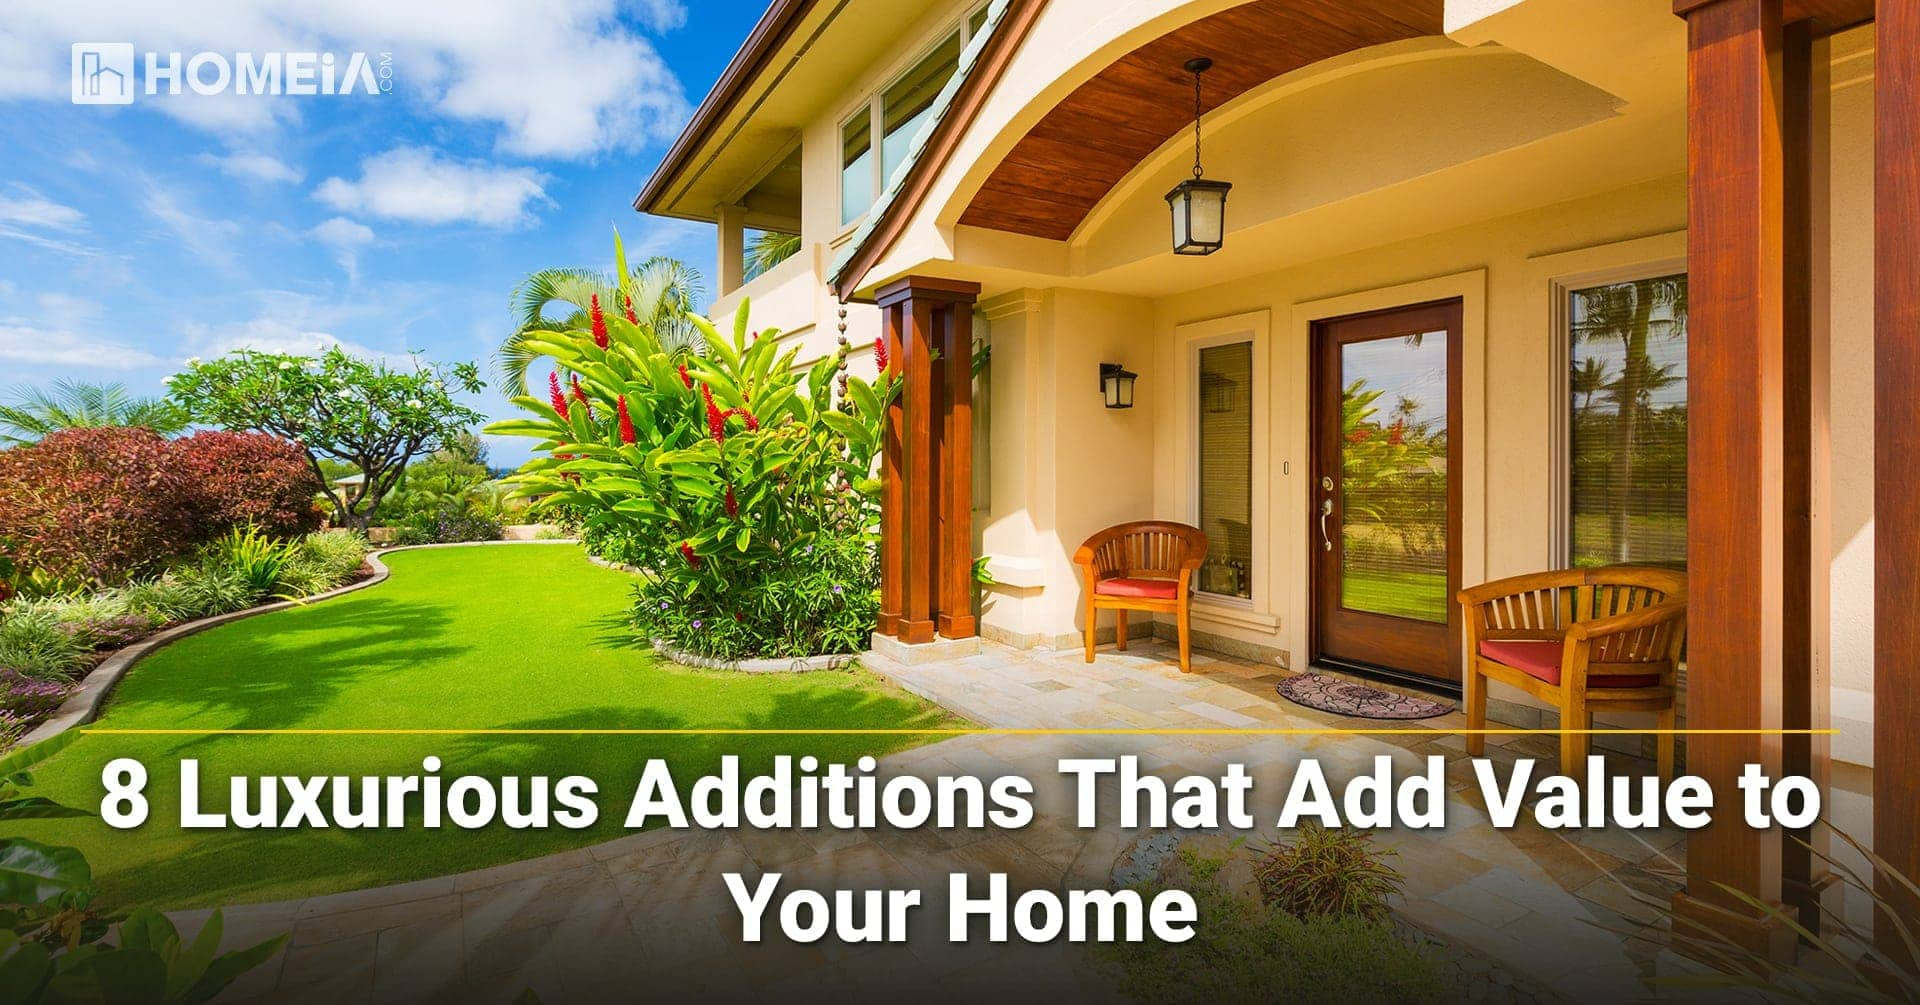 Luxurious Additions That Add Value to Your Home